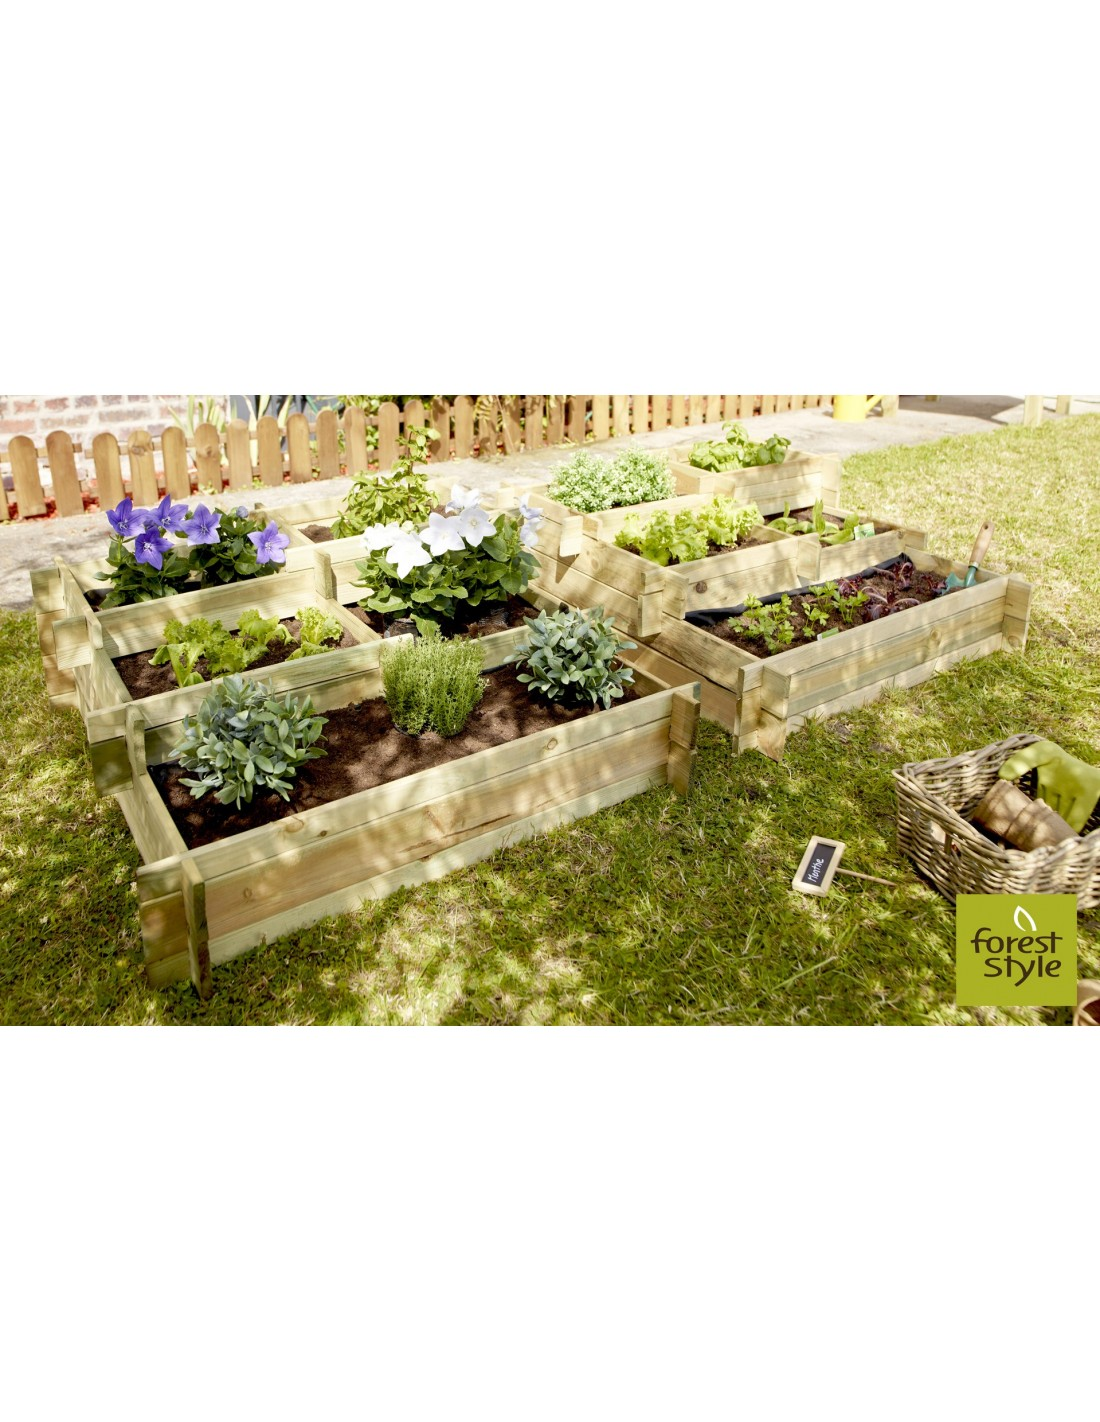 Carre Potager Nikita Forest Style 5 Compartiments Serres